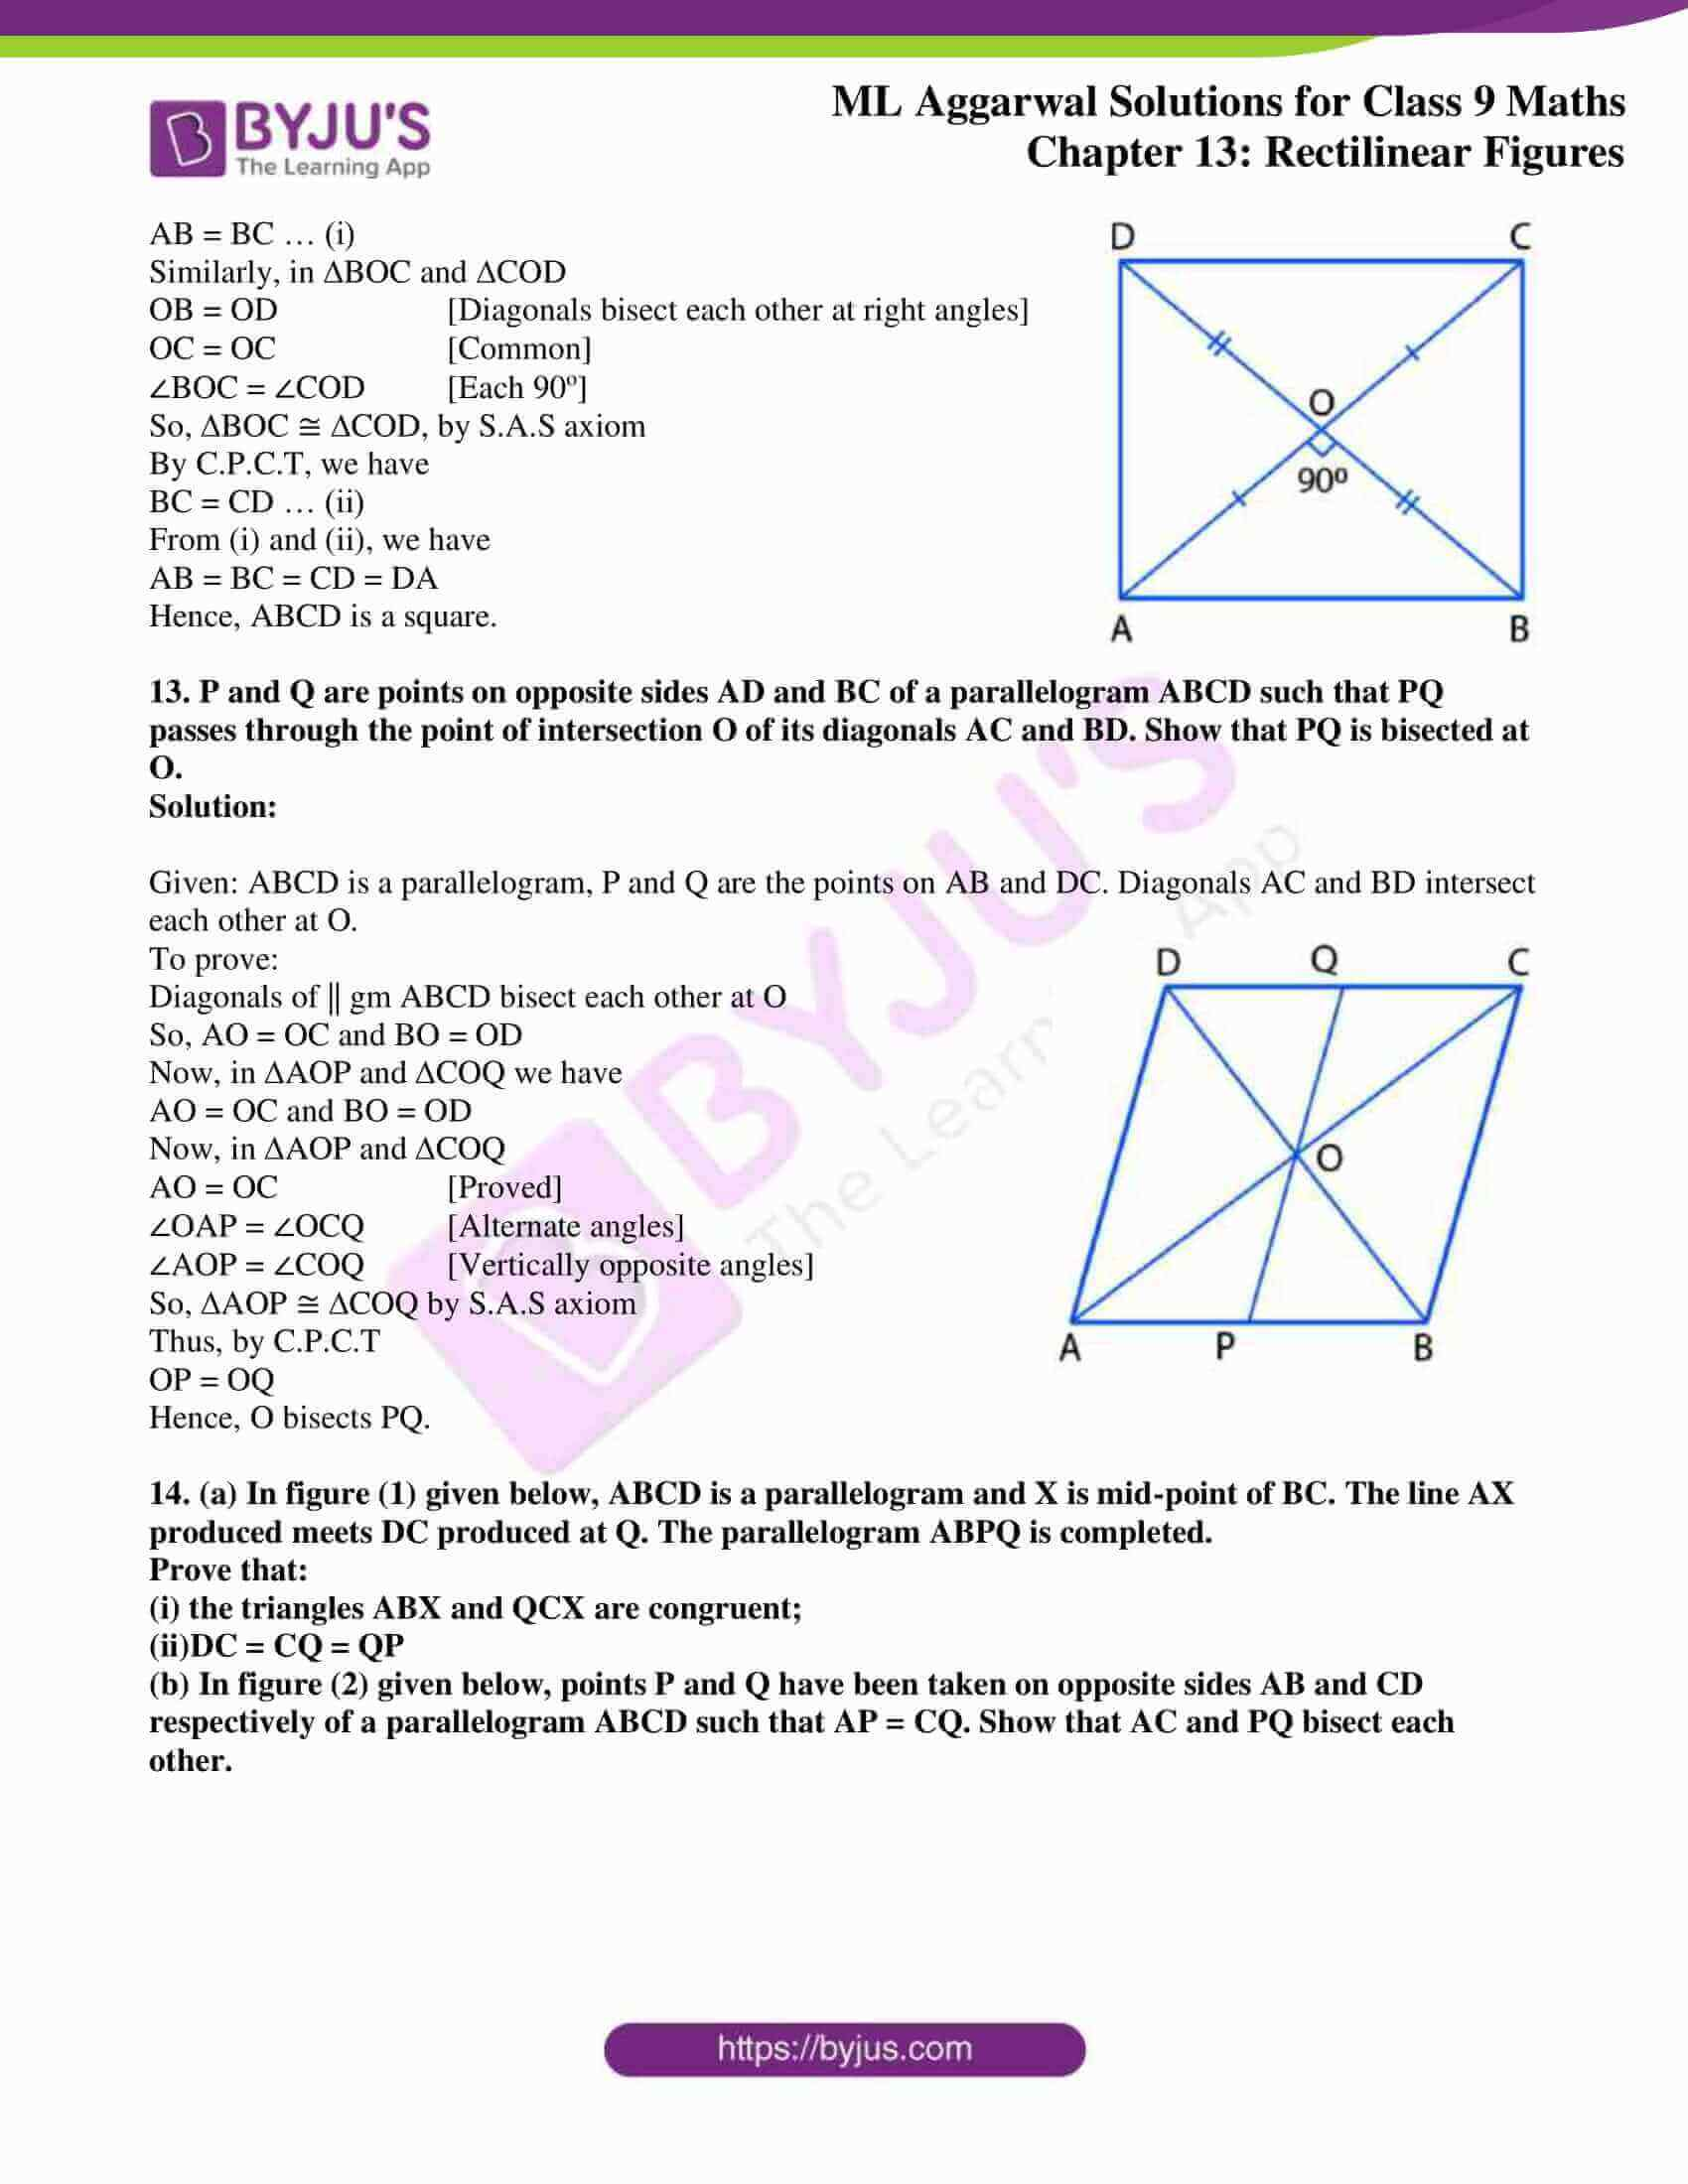 ml aggarwal solutions for class 9 maths chapter 13 13